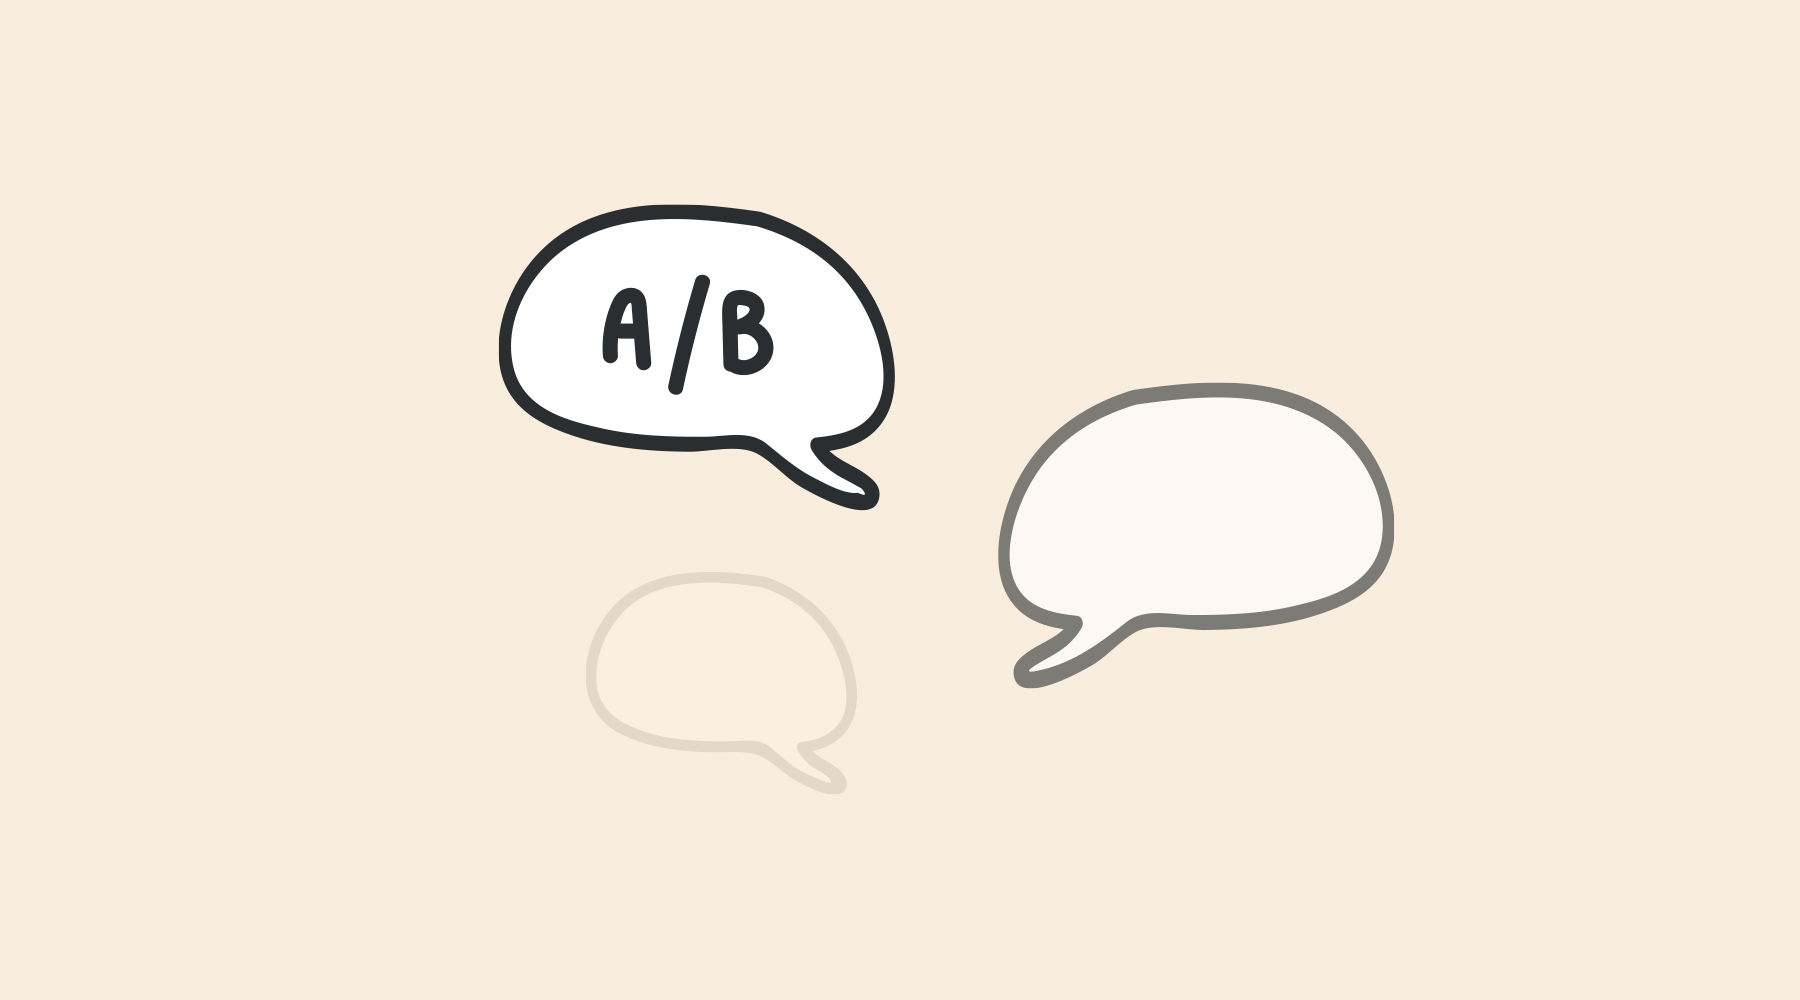 How to Improve A/B Testing by Integrating User Feedback?